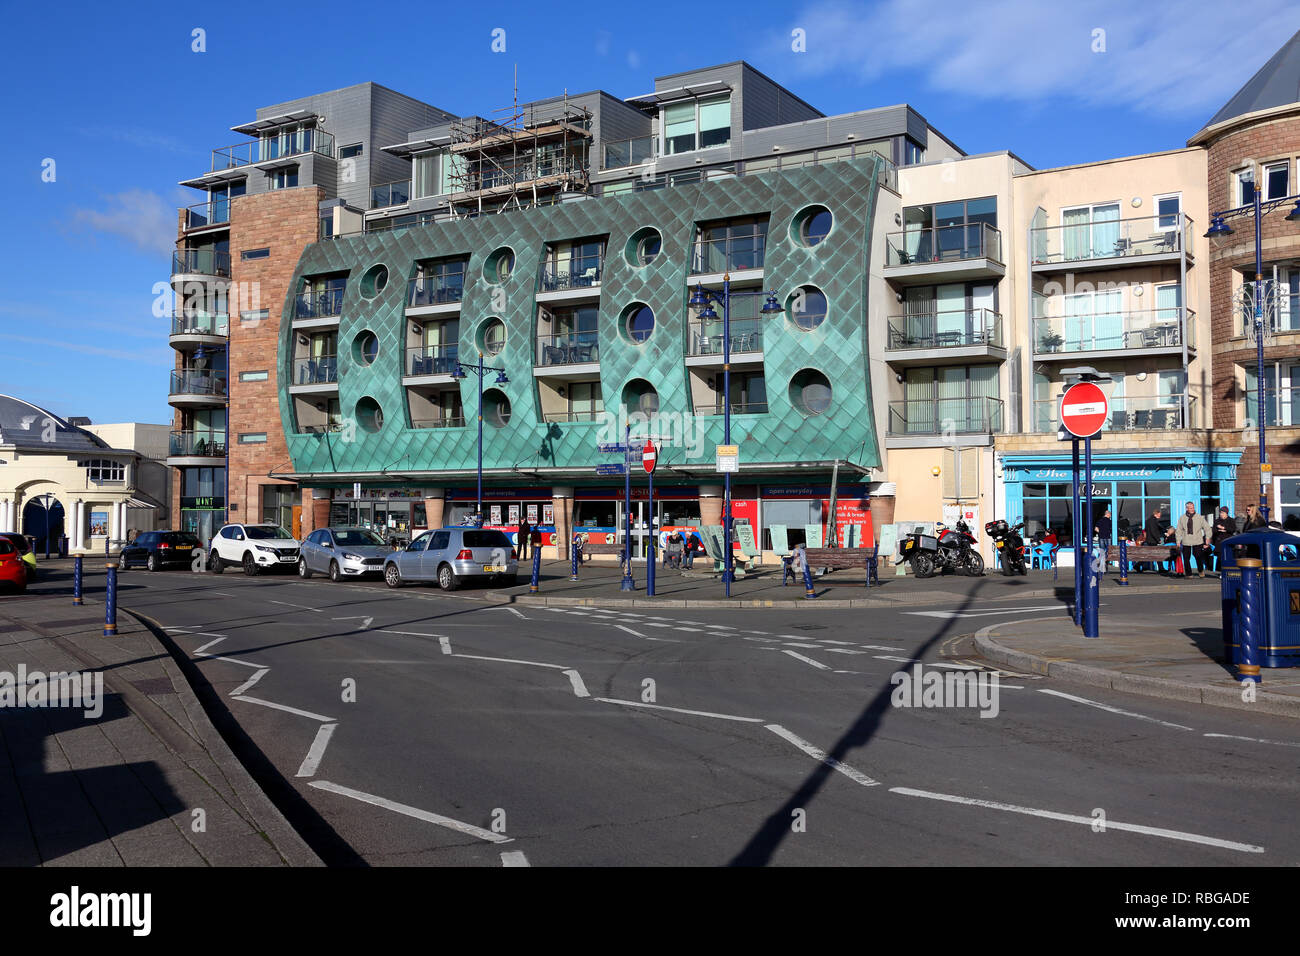 On the seafront at Porthcawl with apartments along the main road giving grand walks and superb sea views, located a few miles away from Bridgend. - Stock Image